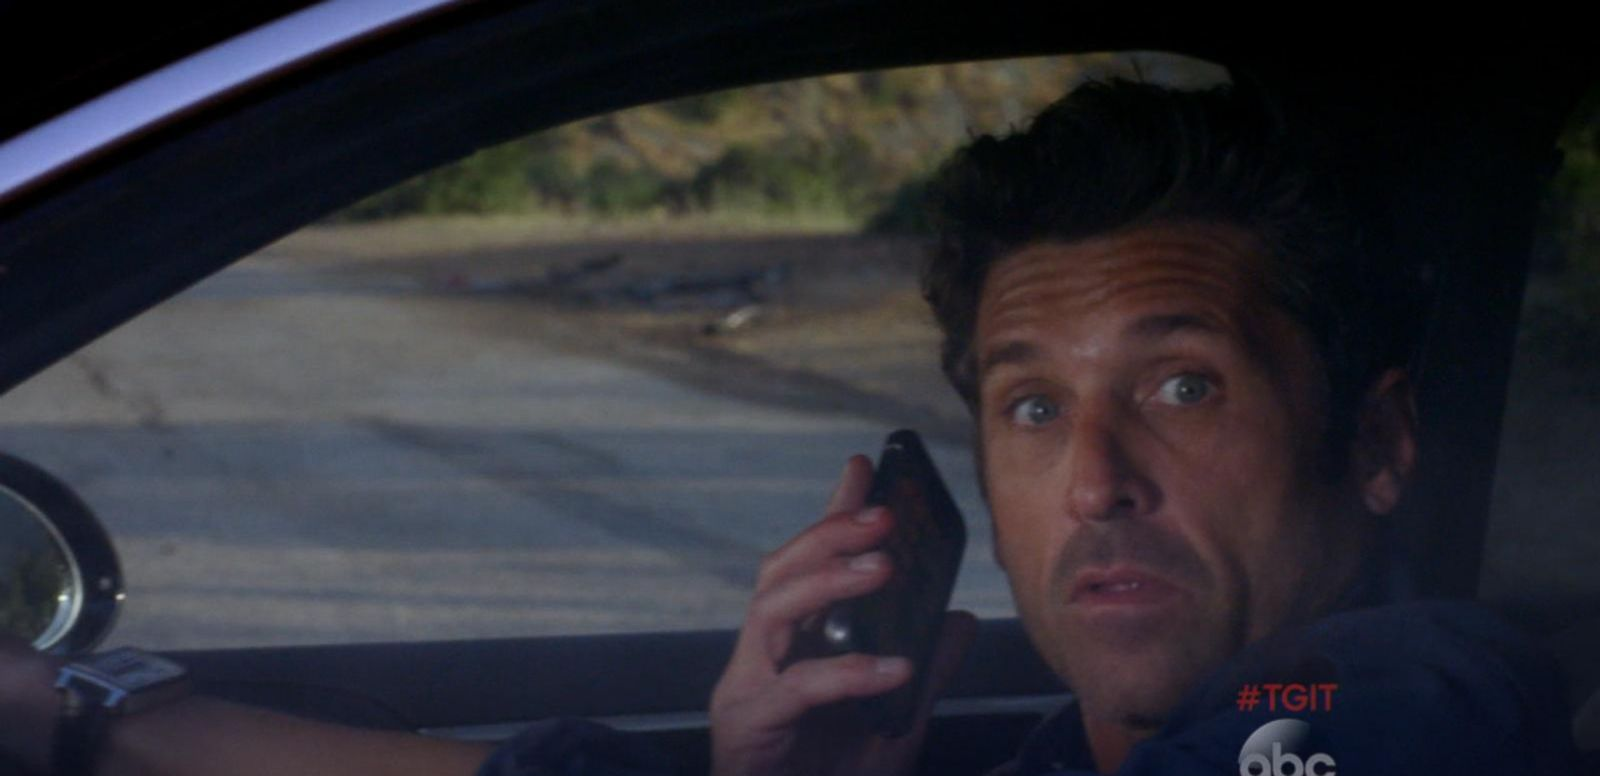 VIDEO: McDreamy Killed Off Grey's Anatomy, or Is It One Big McDream?